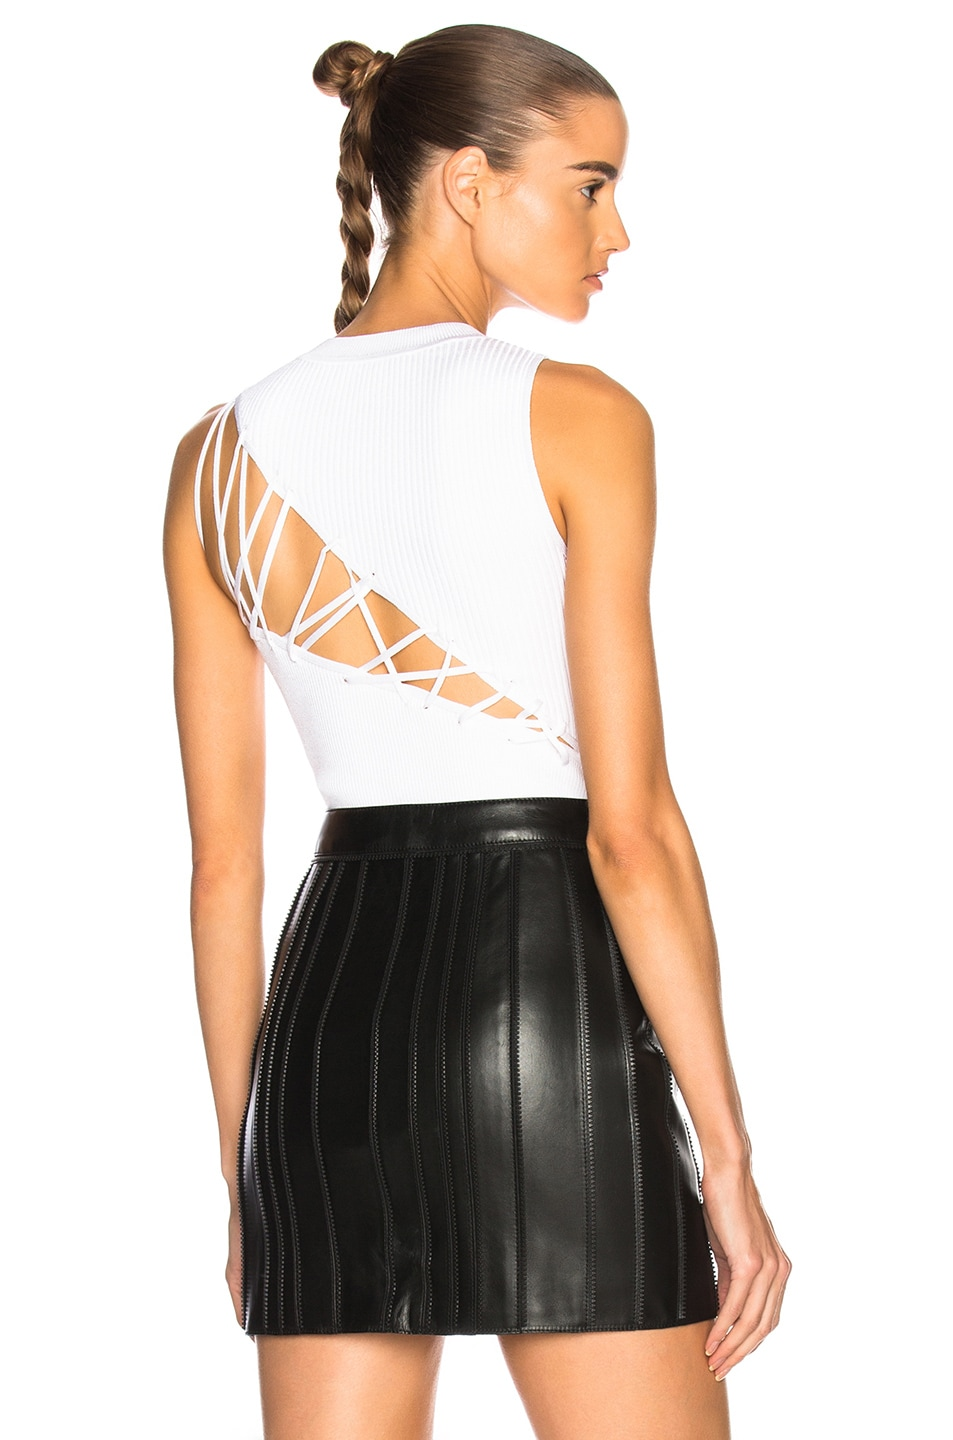 Cushnie et Ochs Angled Back Lacing Sleeveless Bodysuit in White